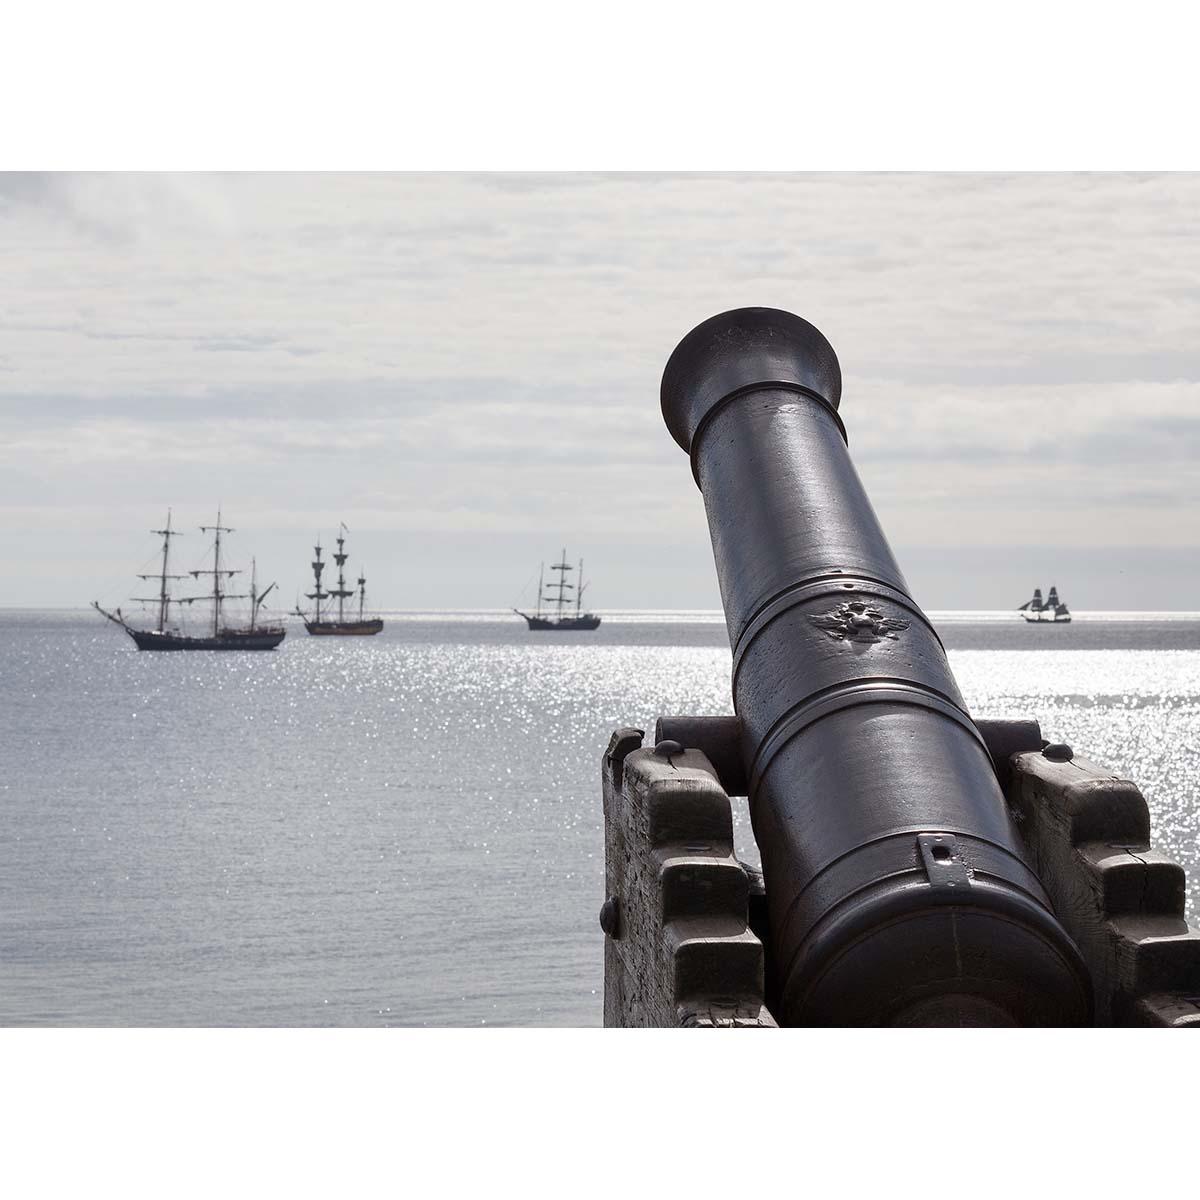 Russian Cannon from Sevastopol on display in Dun Laoghaire